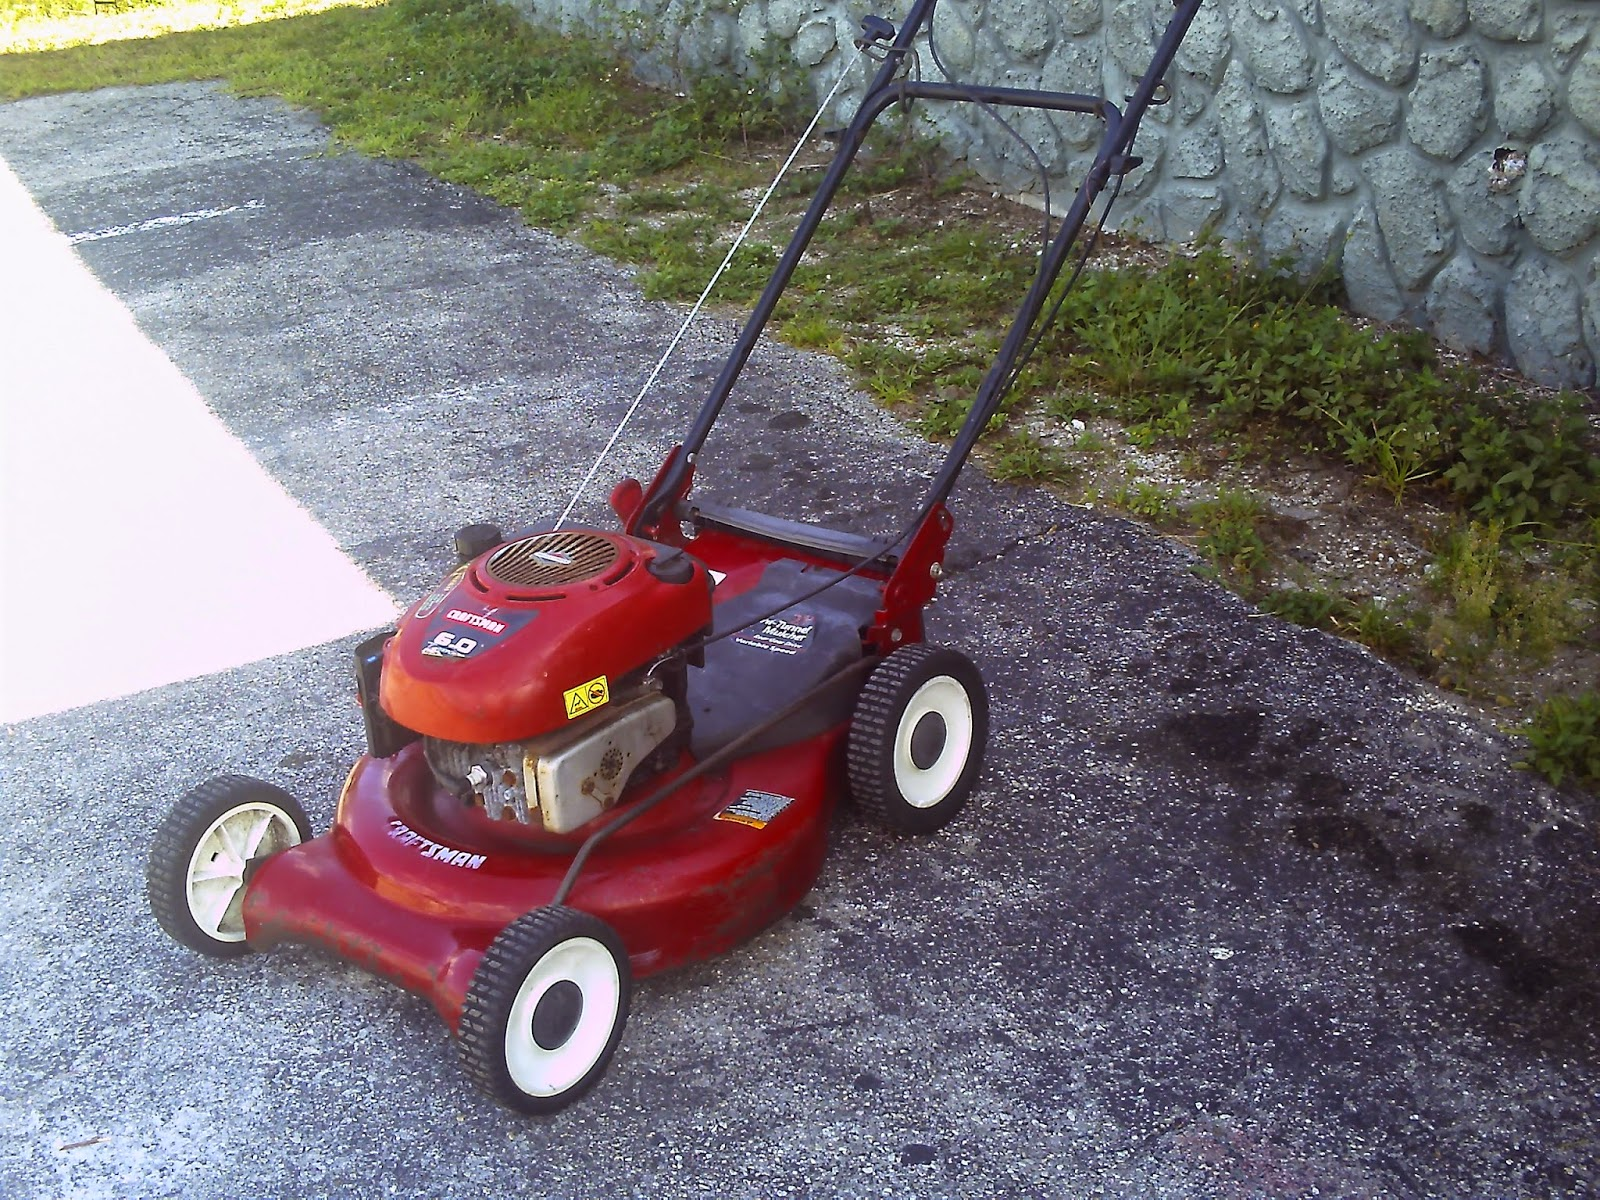 Craftsman Rear Wheeled Self Propelled Mower 6 0 Hp Heavy Duty That Is An Excellent Addition To Any Avid Yardperson S Lawn Equipment Nal